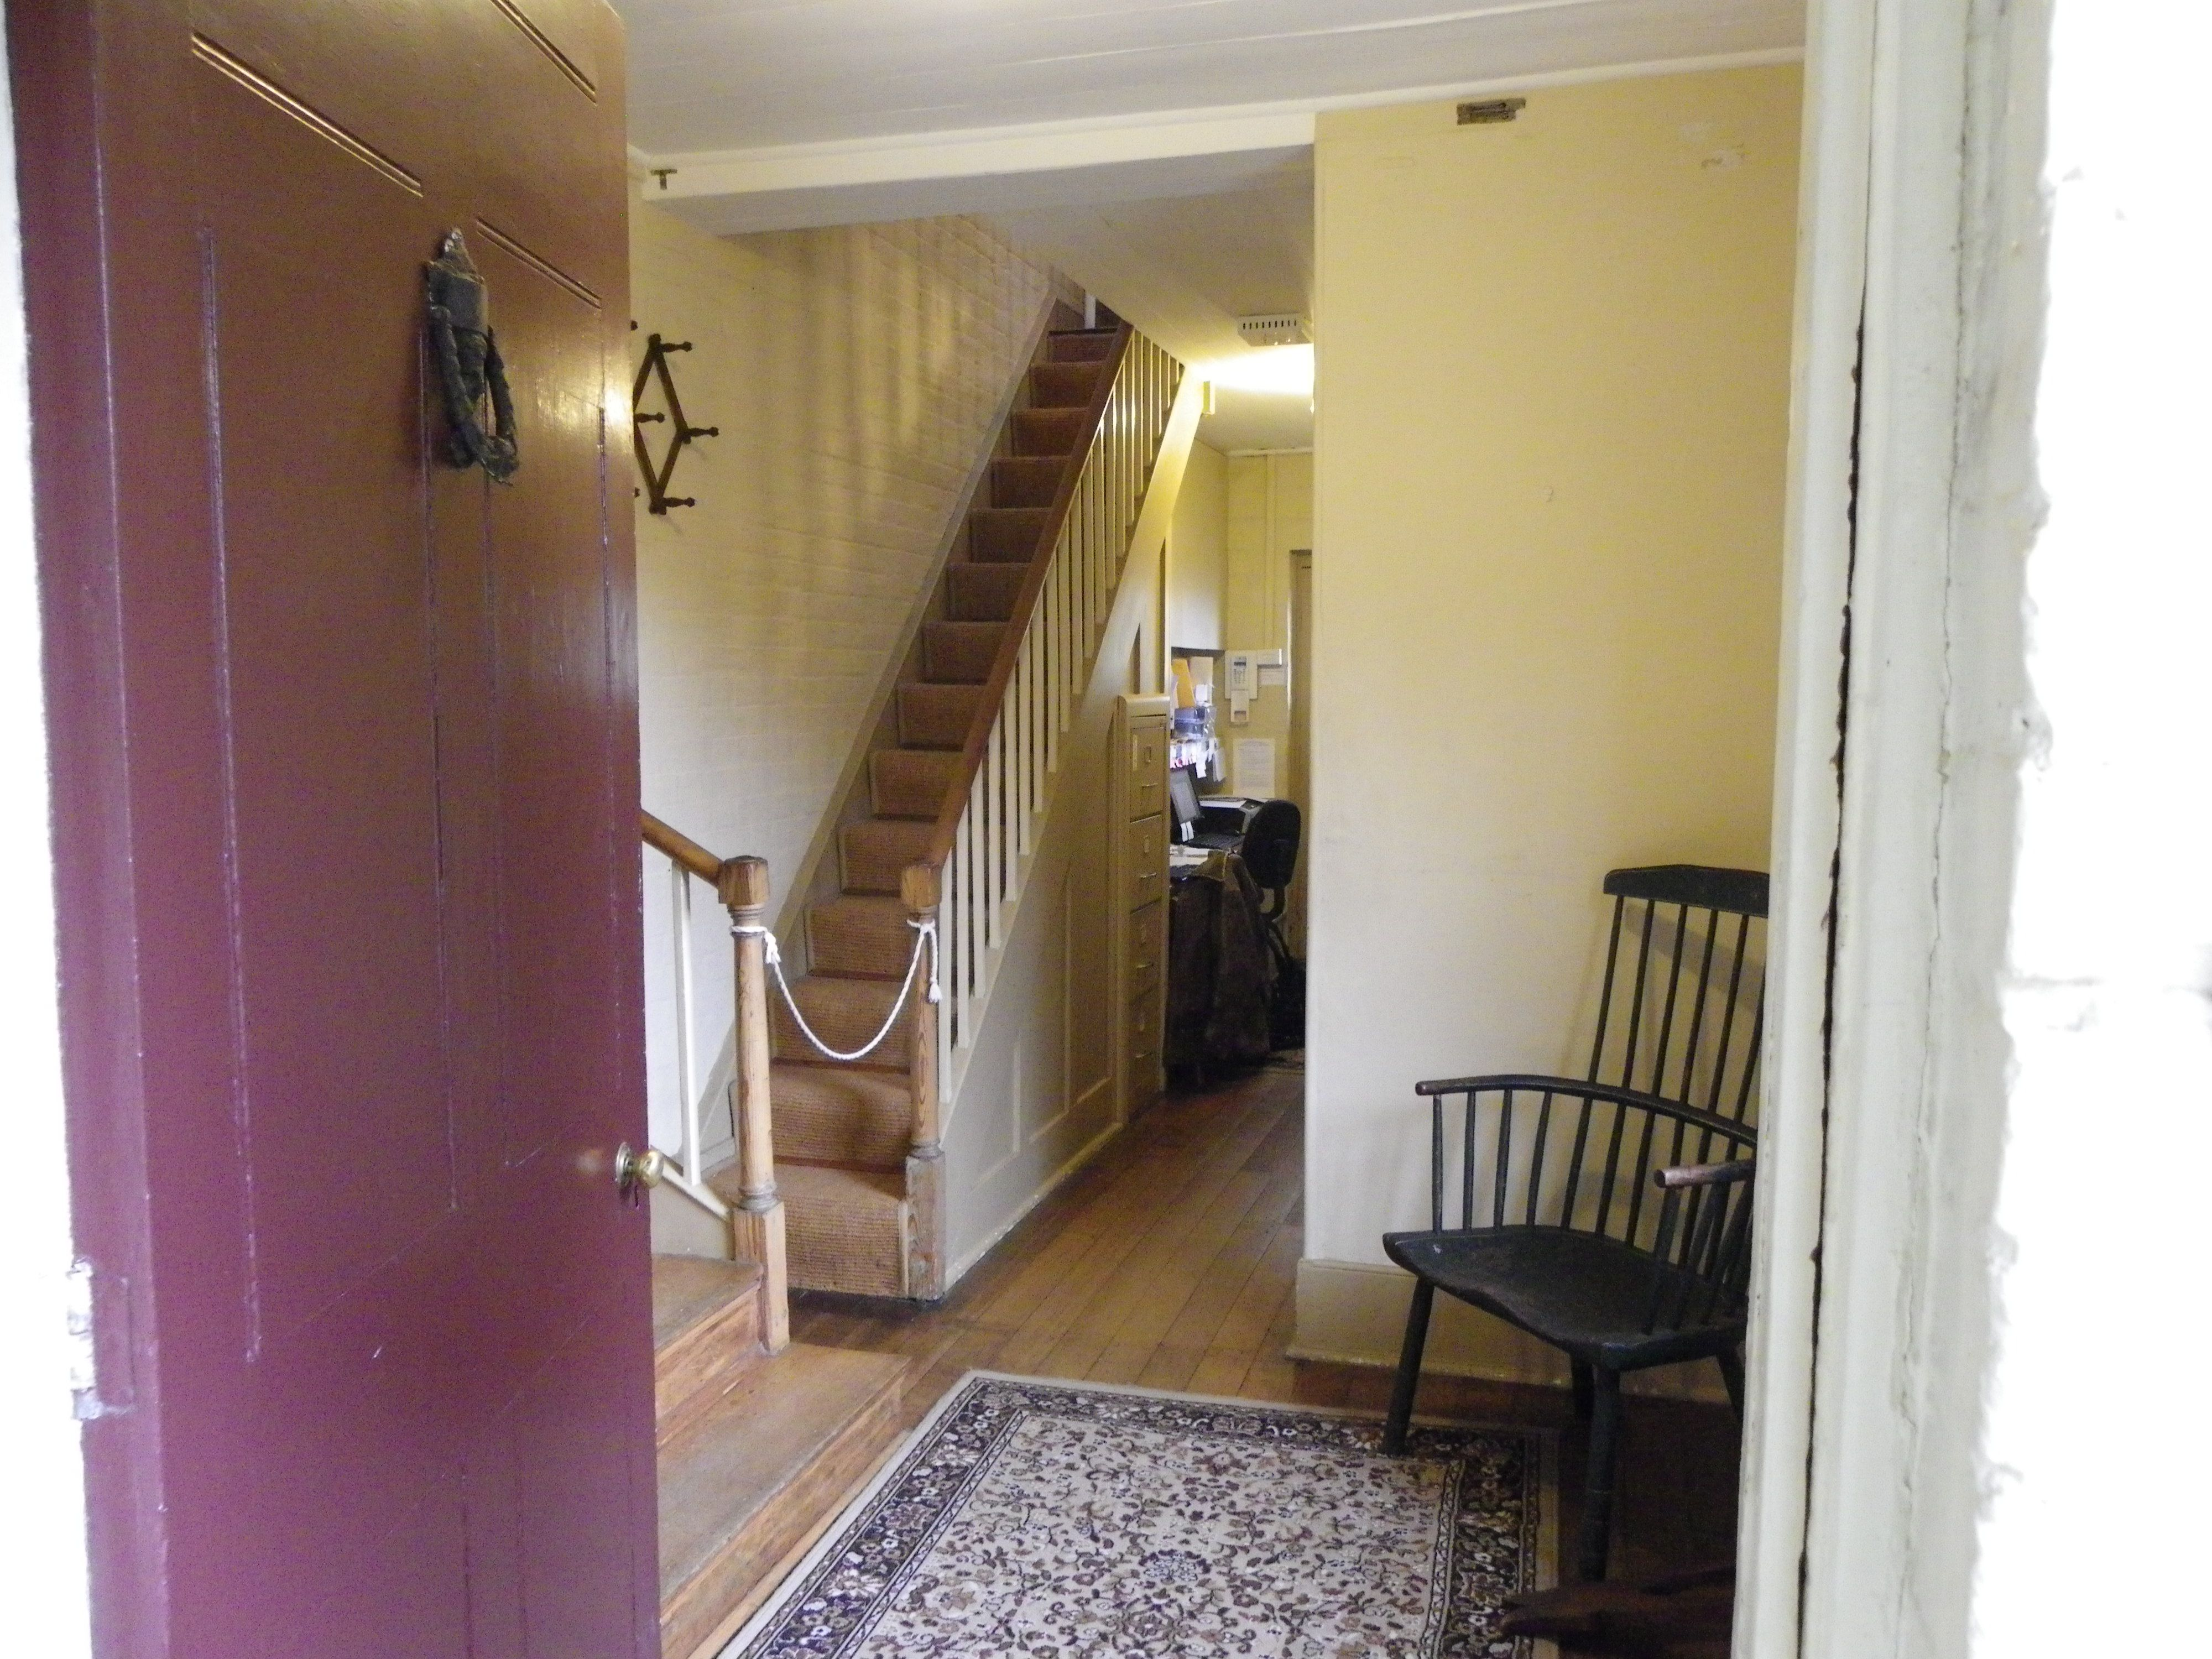 the servants staircase situated at the back entrance to the house